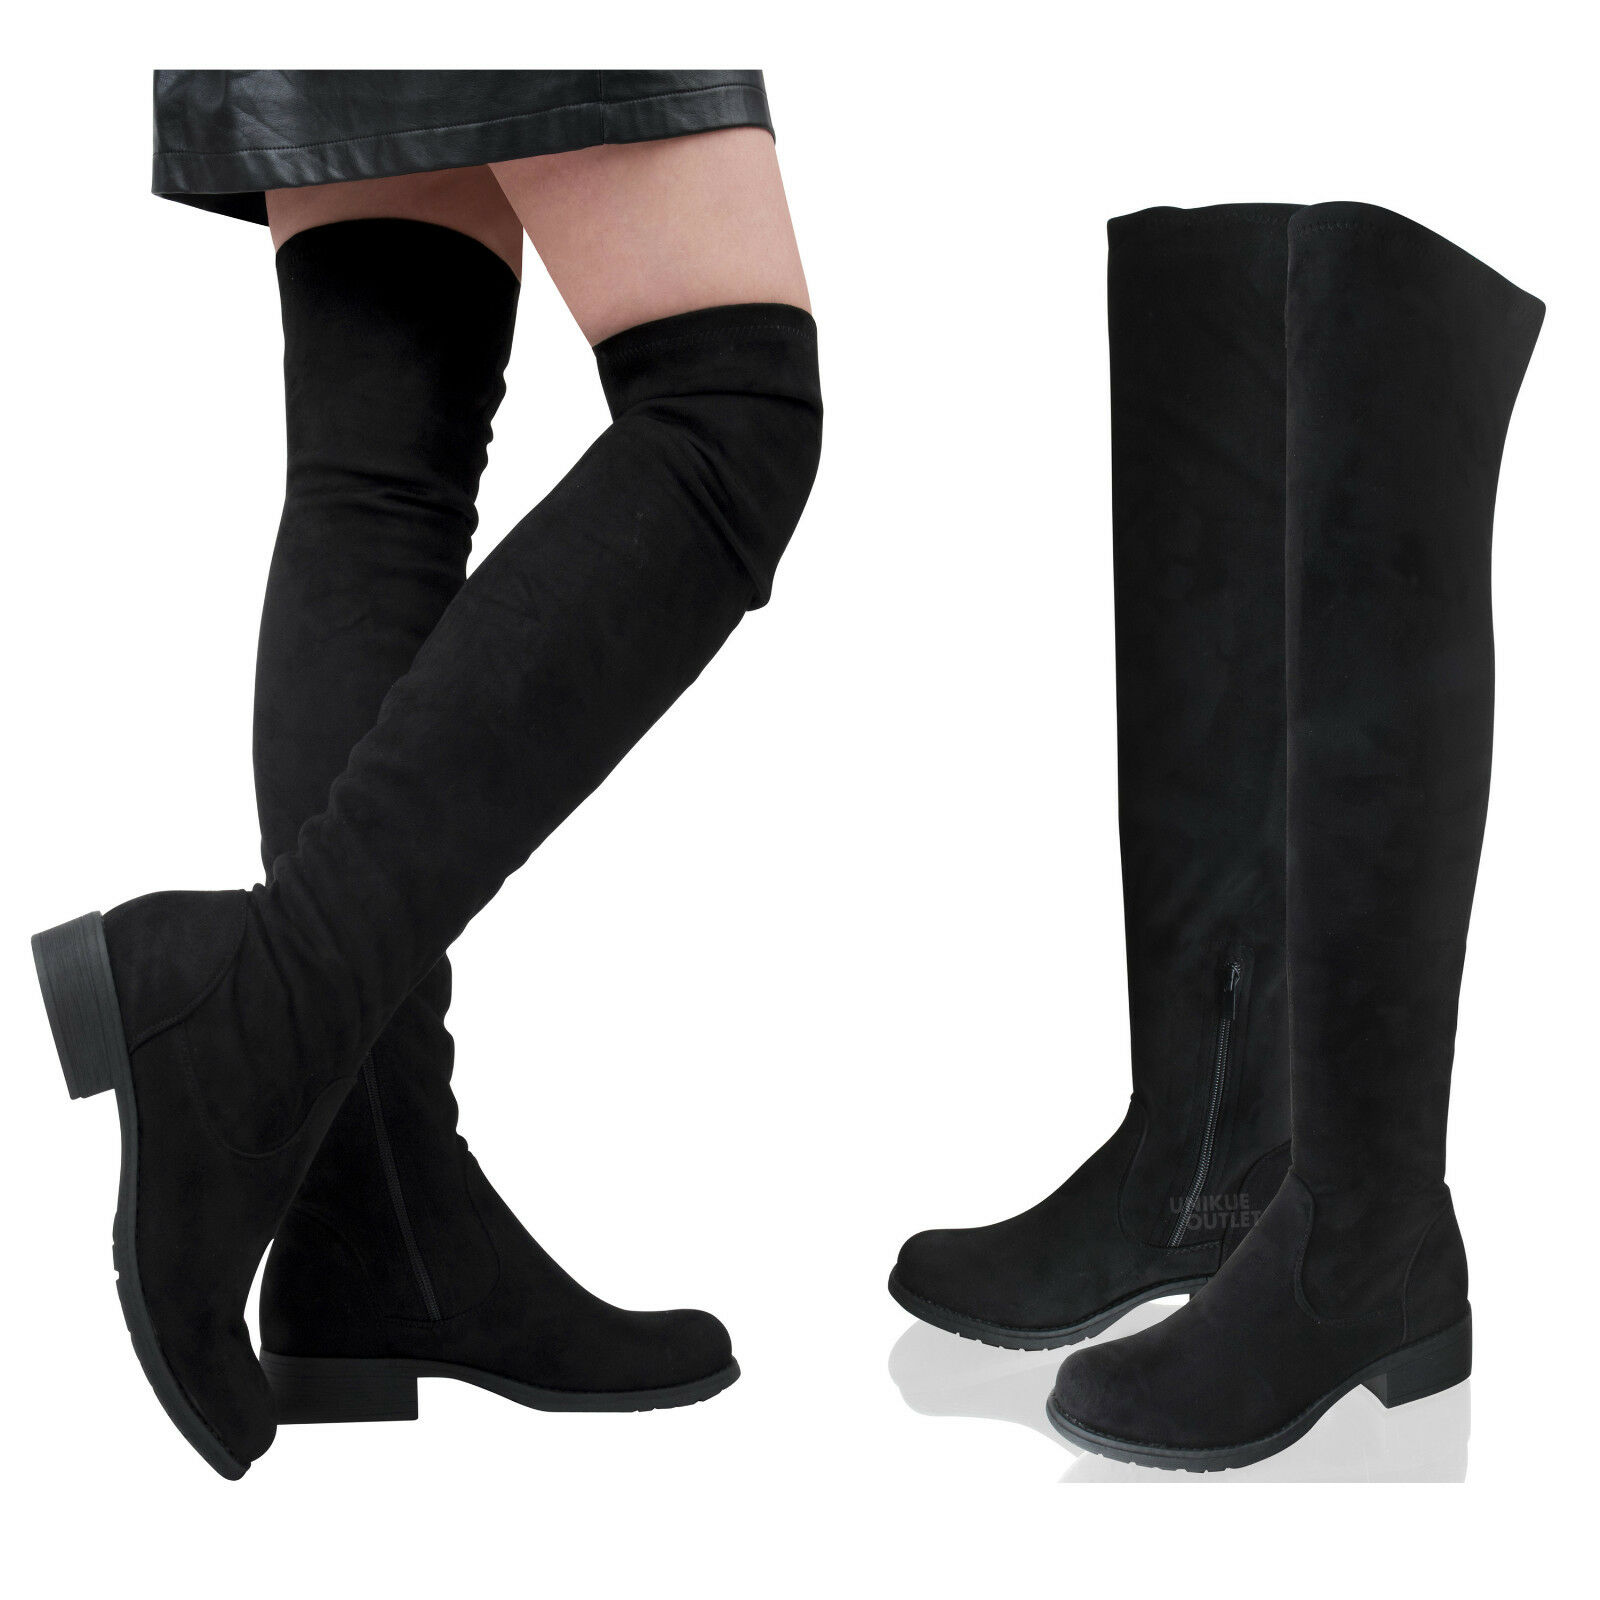 Womens Ladies Thigh High Over The Knee Low Block Heel Black Boots Shoes Size